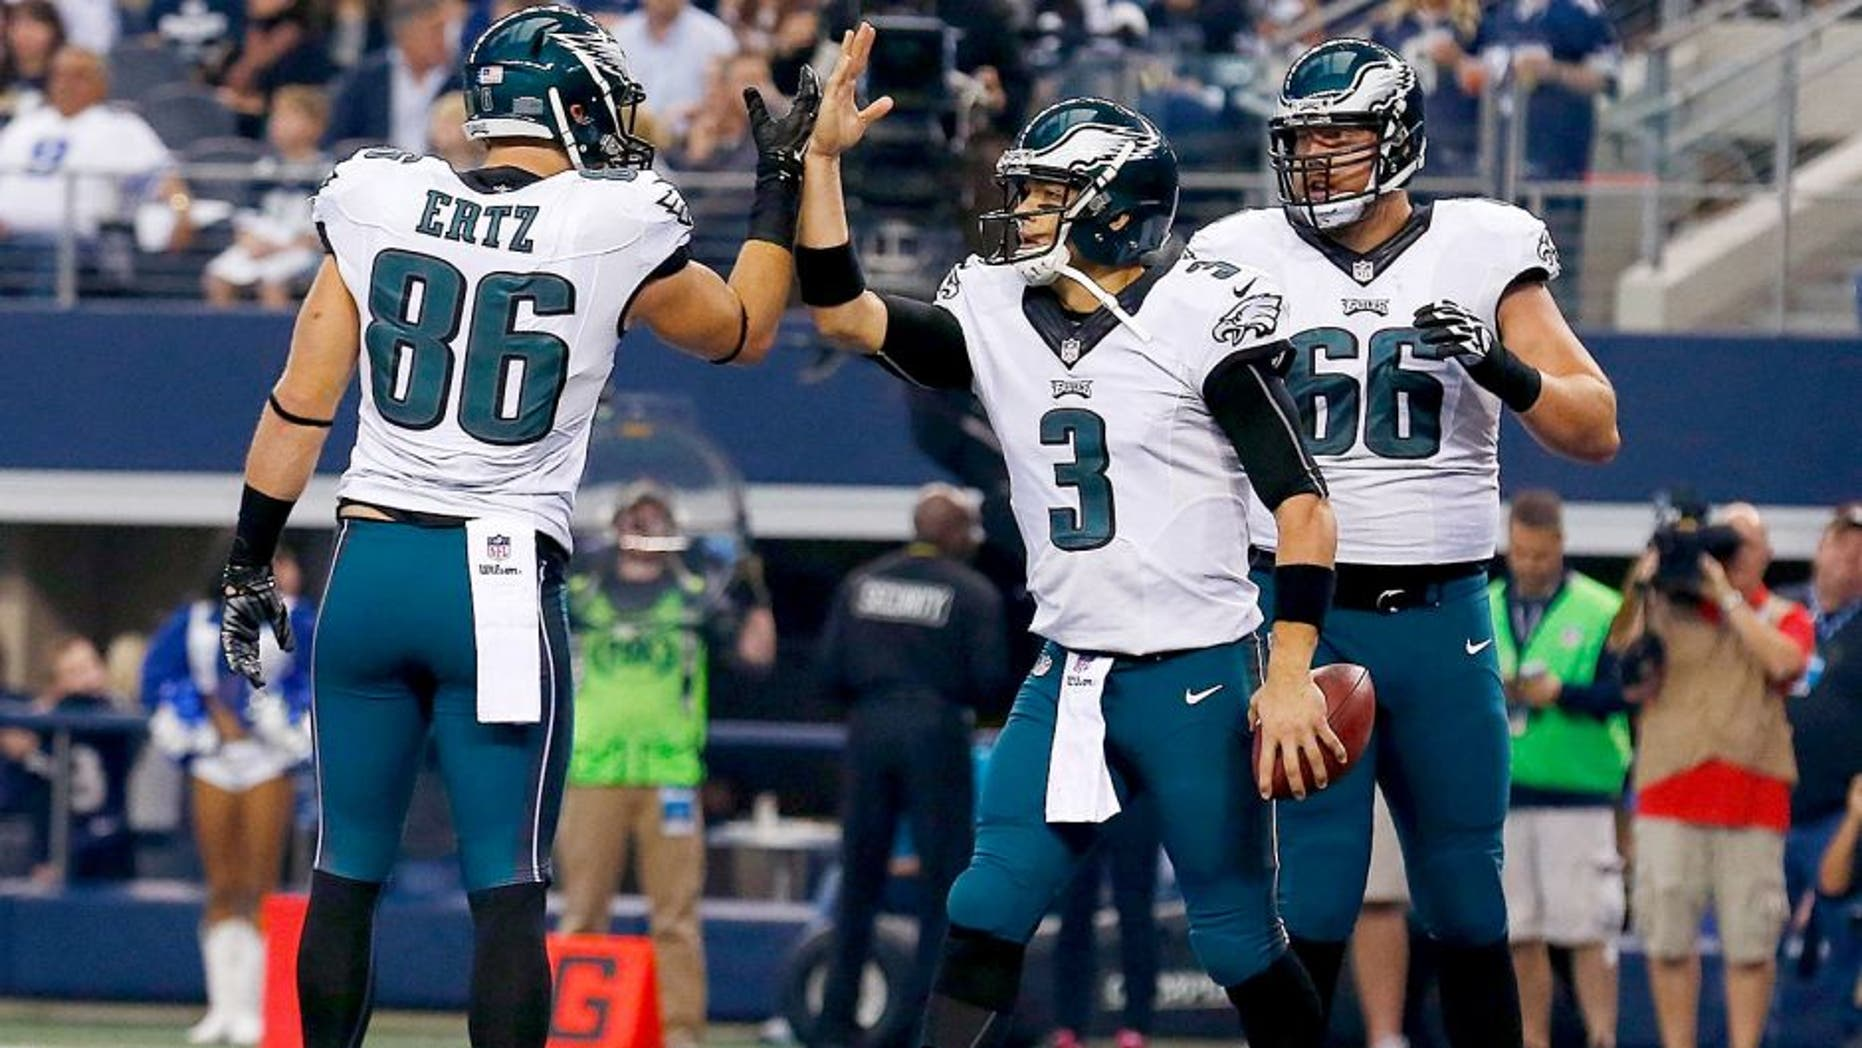 ARLINGTON, TX - NOVEMBER 27: Mark Sanchez #3 of the Philadelphia Eagles is congratulated by Zach Ertz #86 of the Philadelphia Eagles as Andrew Gardner #66 of the Philadelphia Eagles is near after he scored a touchdown against the Dallas Cowboys in the first half at AT&T Stadium on November 27, 2014 in Arlington, Texas. (Photo by Tom Pennington/Getty Images)